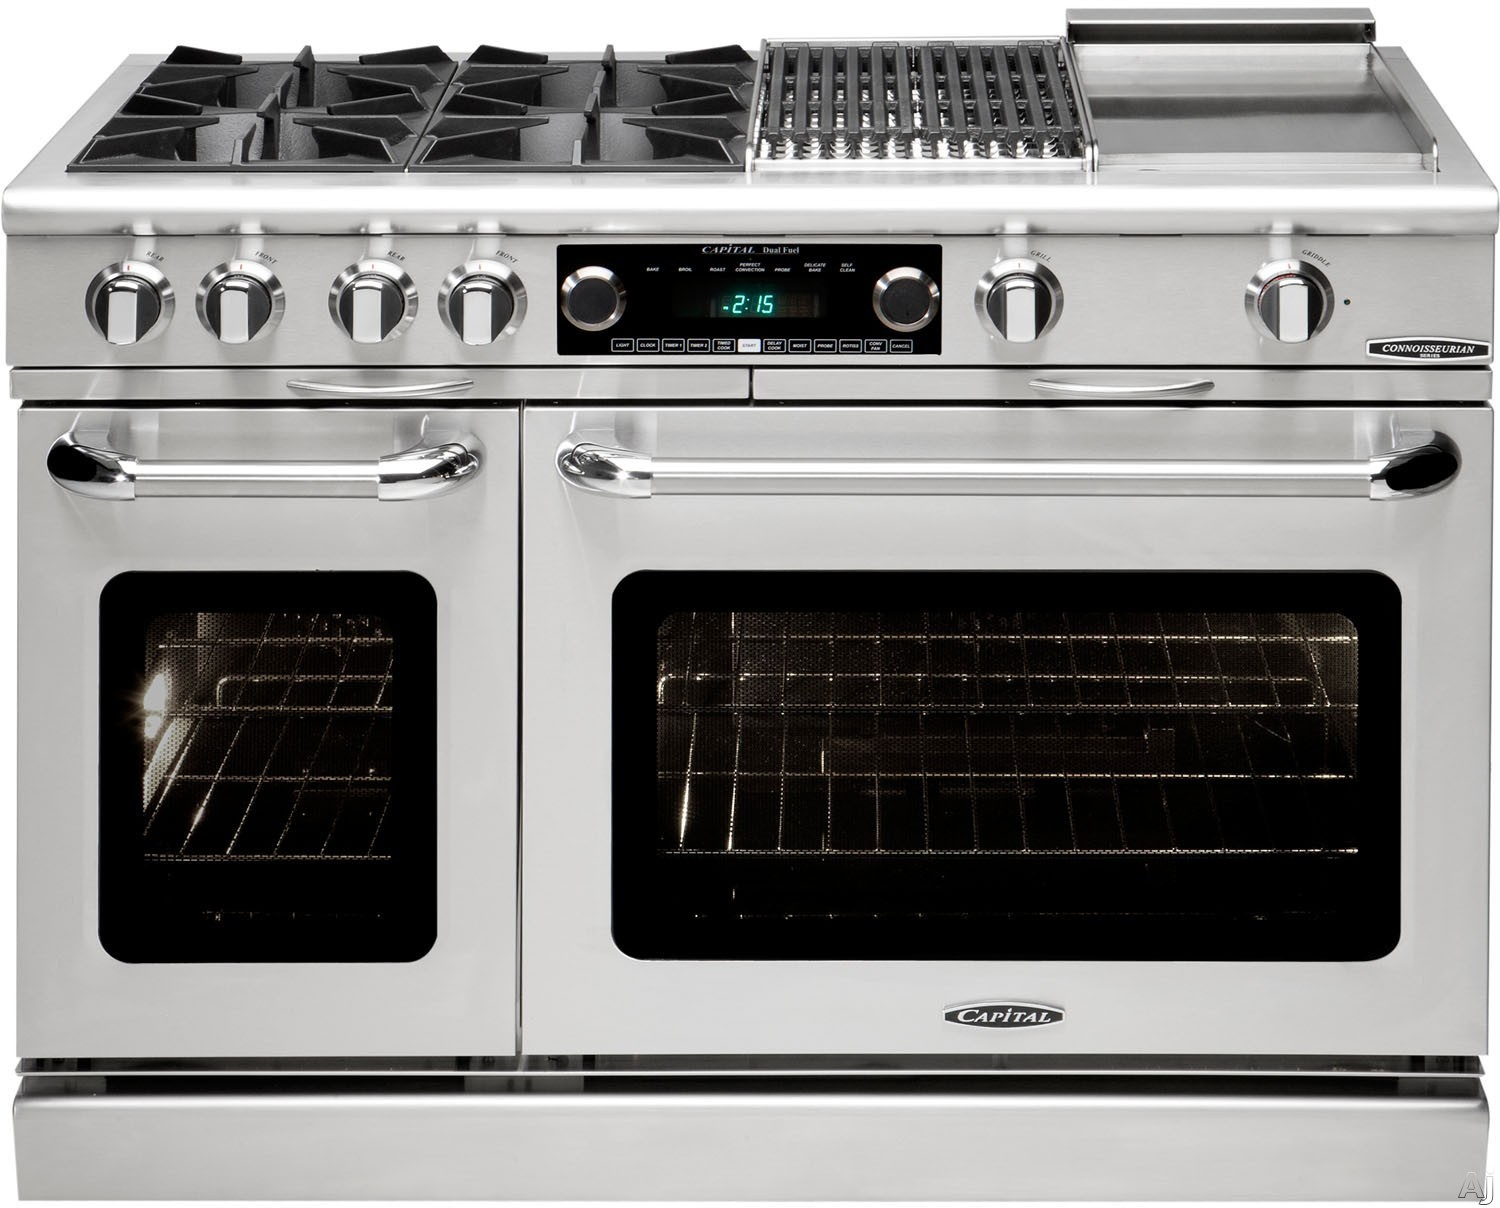 "Capital Connoisseurian Series COB488 48 Inch Pro-Style Dual Fuel Range with 8 Open Burners, Dual Kitchen Timers, Meat Probes, Self-Cleaning Ovens, Moto-Rotisâ""¢ Rotisserie, Moist Bake Option, 5.4 cu. ft. Primary Oven and 2.4 cu. ft. Secondary Oven COB488"